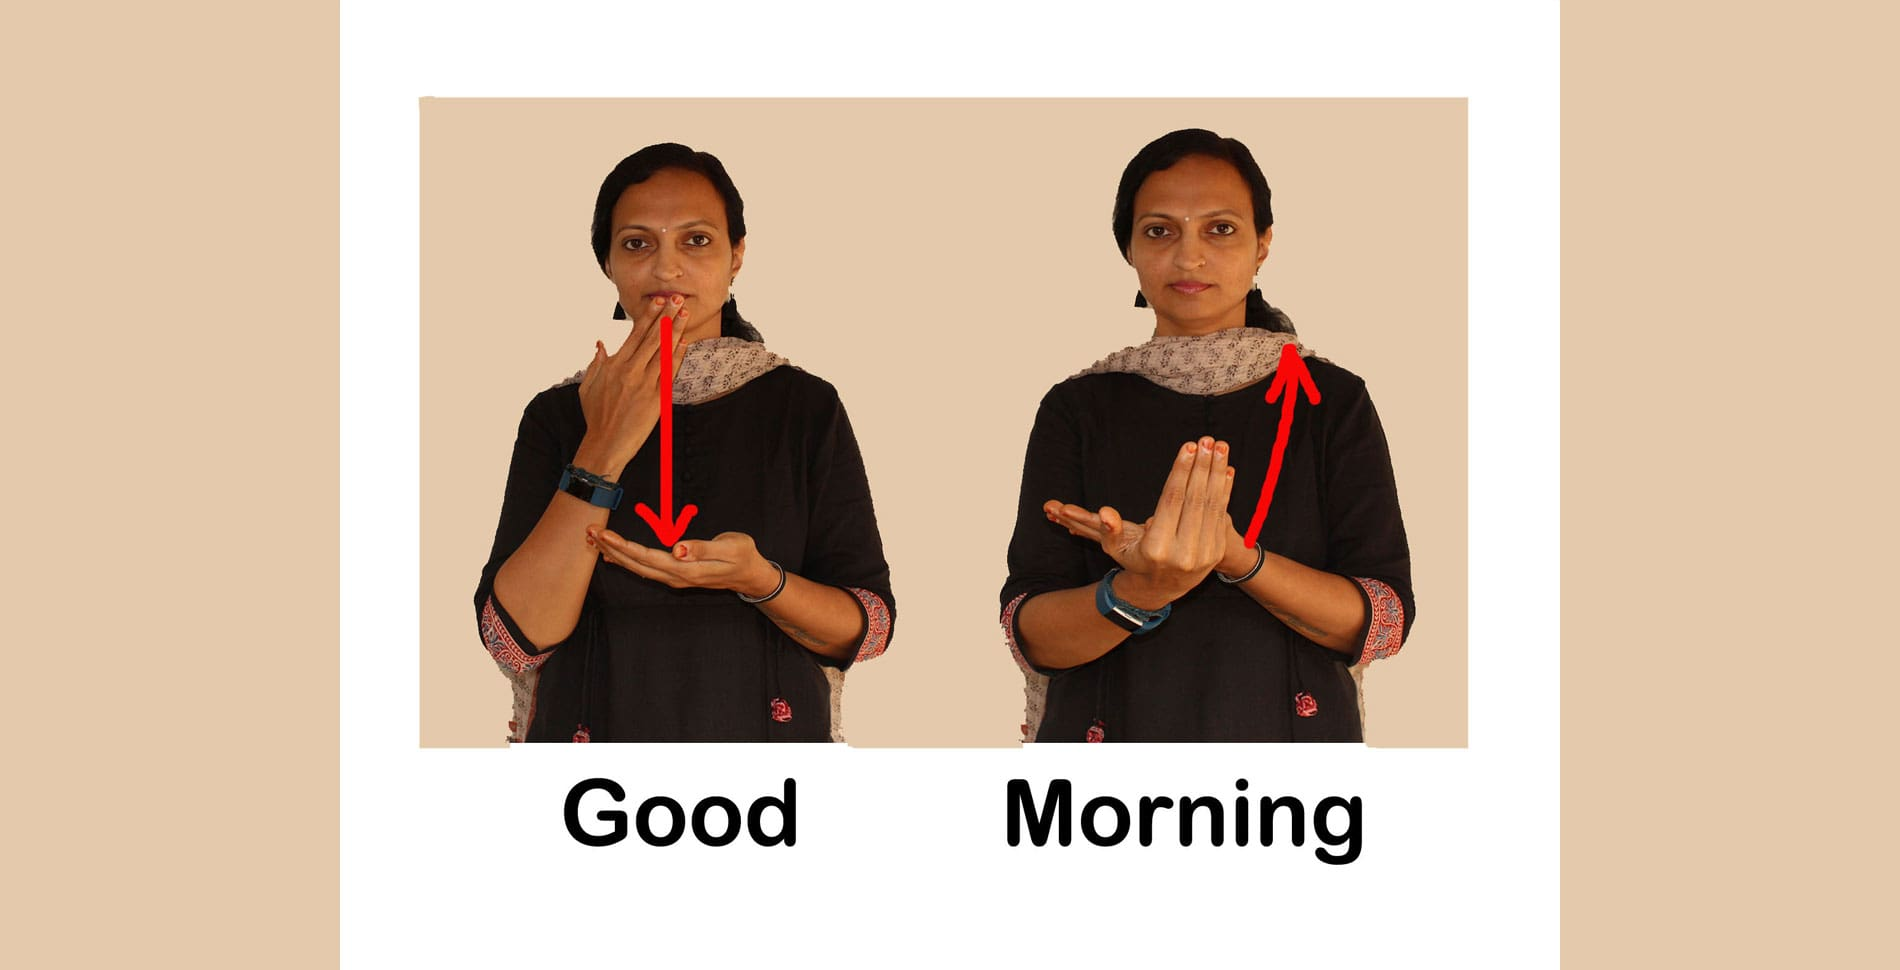 Good Morning in Sign-Language